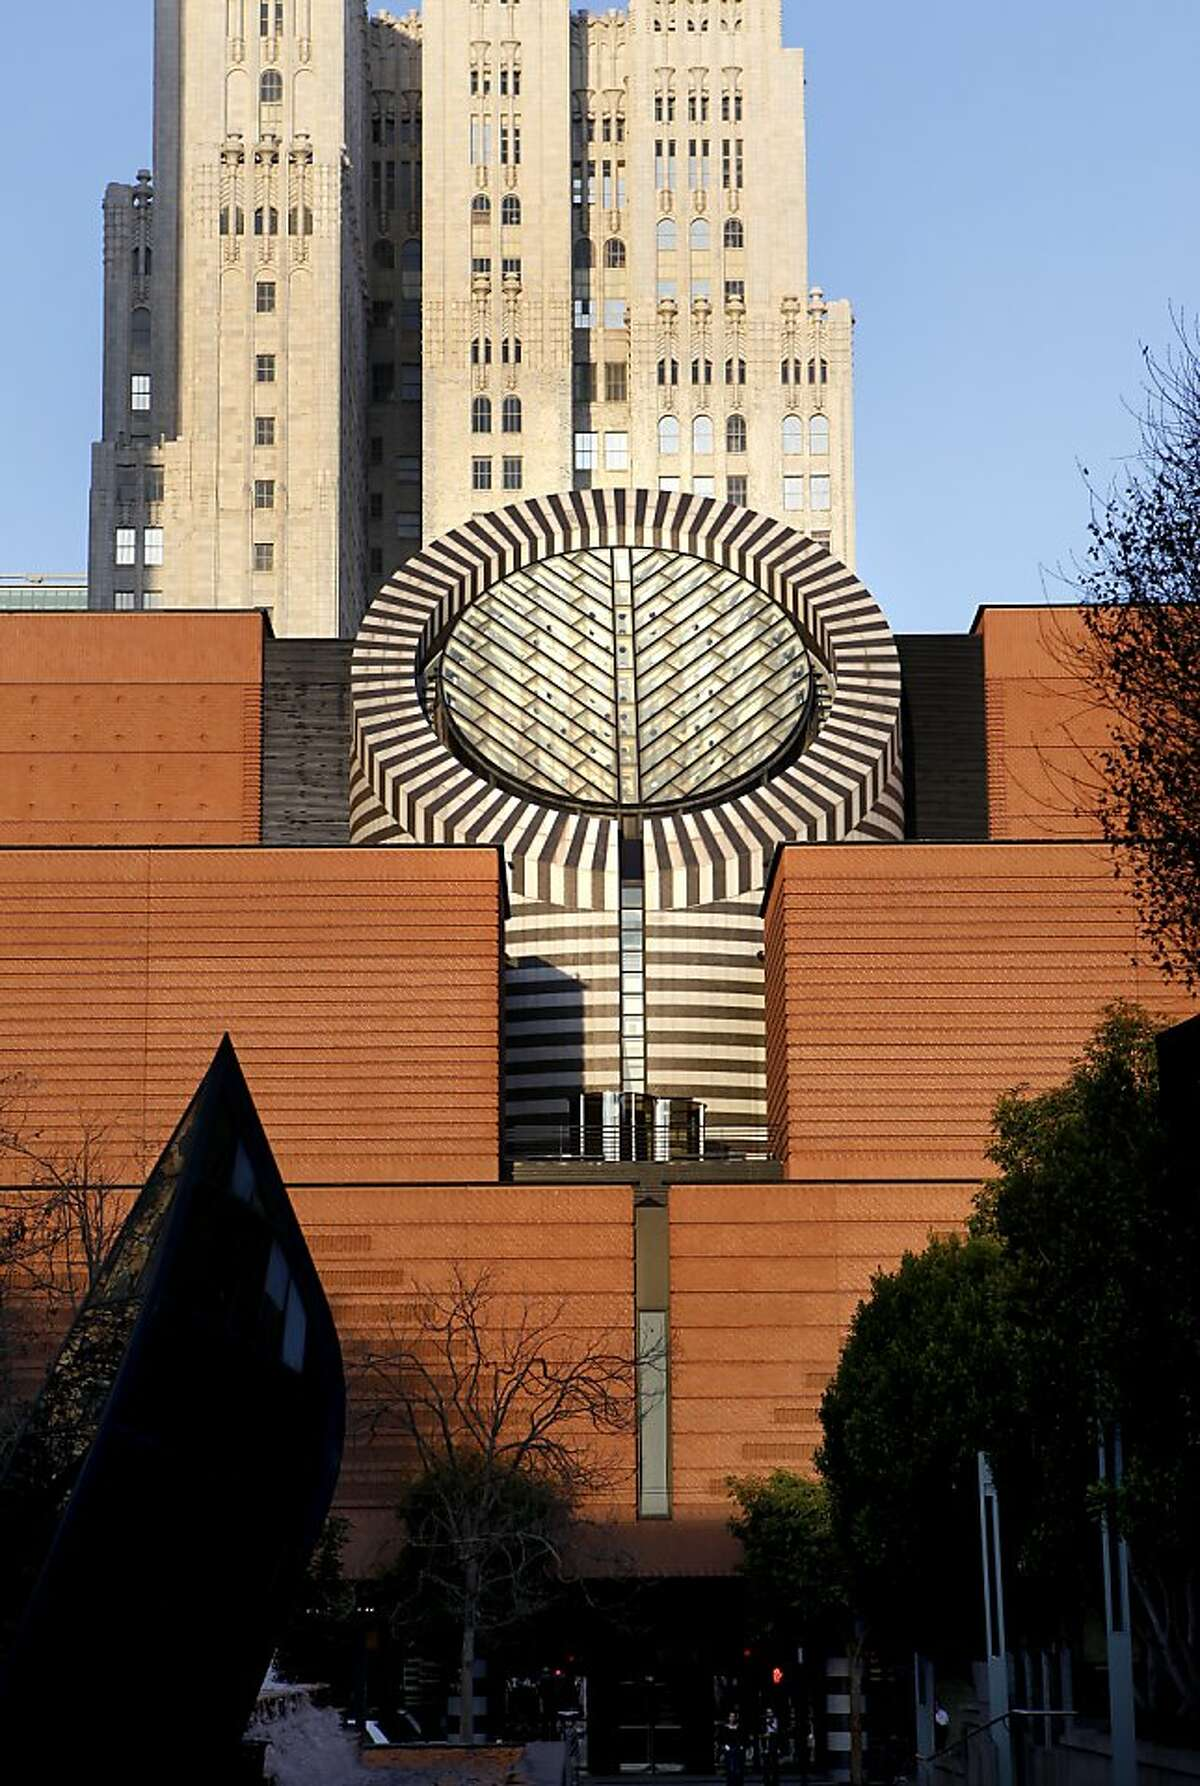 An exterior view of the Museum of Modern Art in San Francisco photographed from the Yerba Buena Gardens.